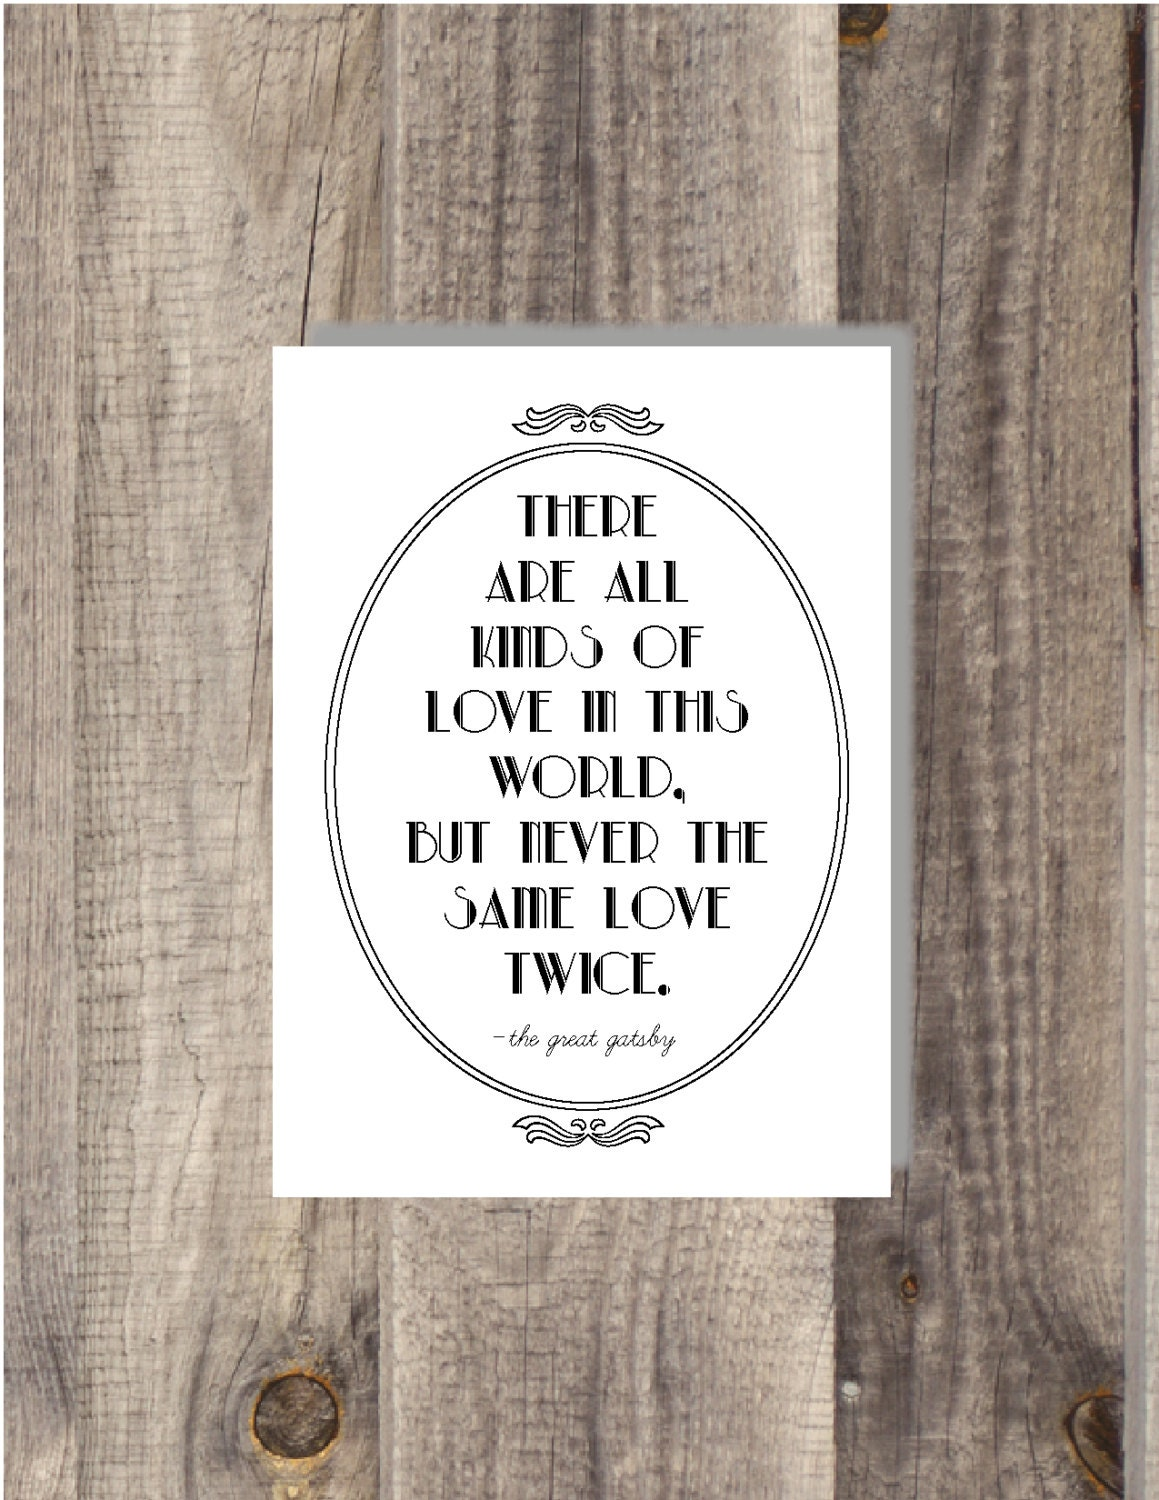 Gatsby - Never the same love twice - Movie Quote - Famous Book Quote